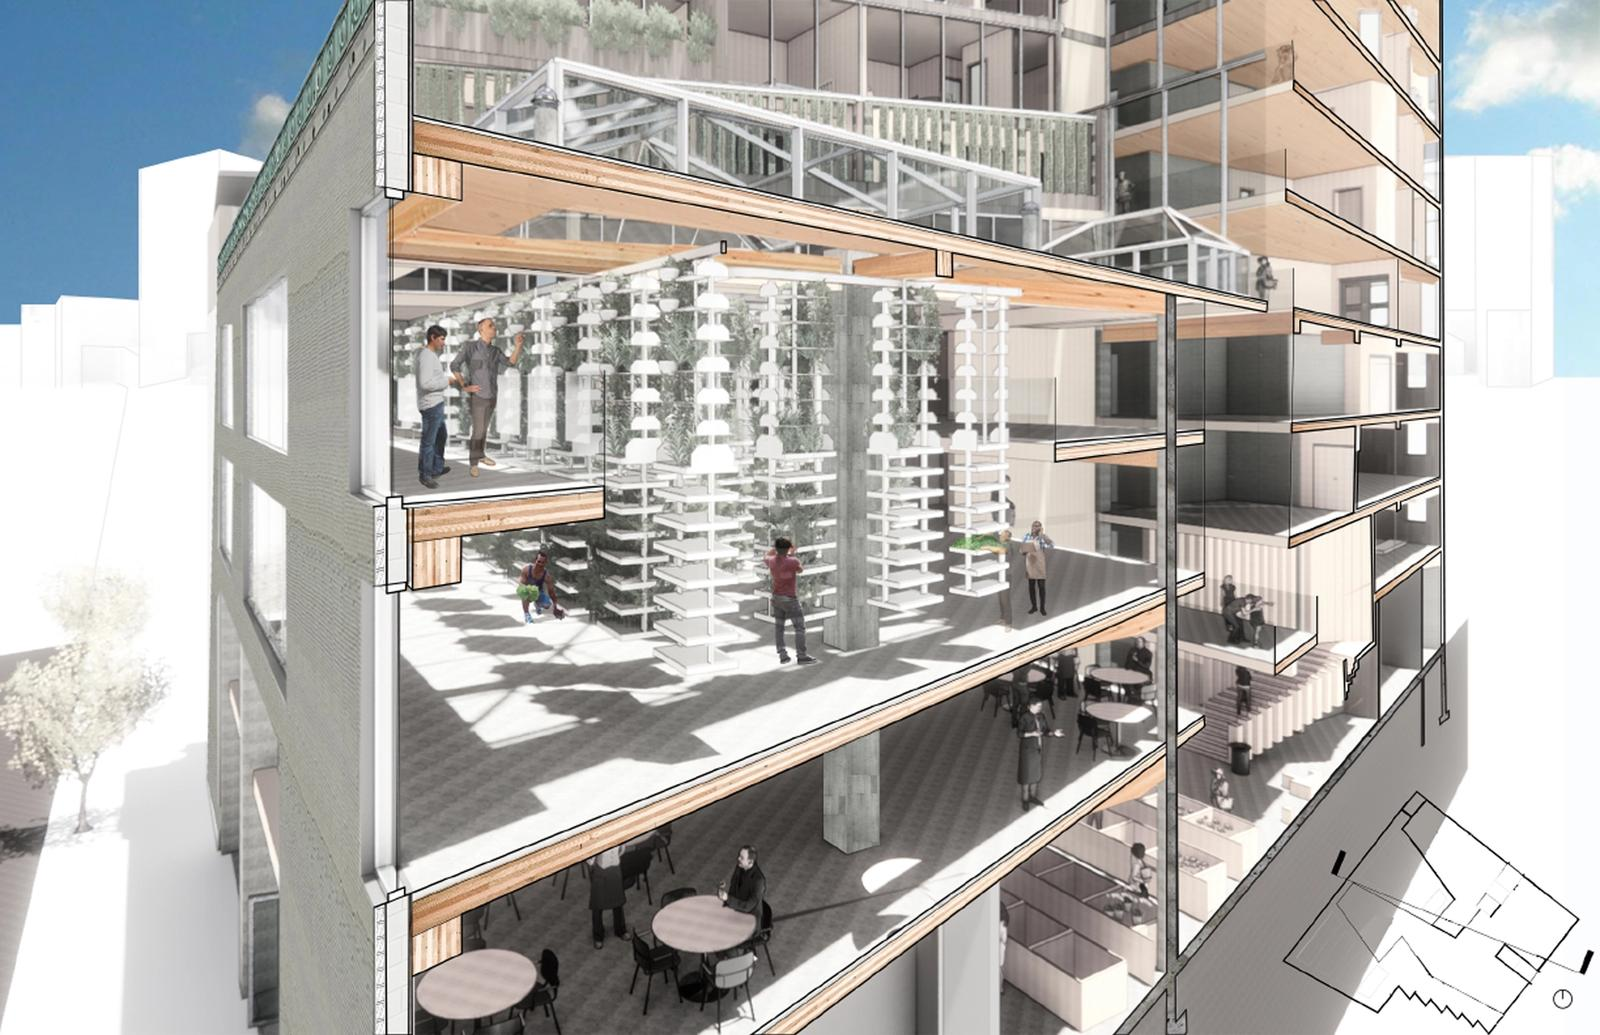 Section perspective of the vertical farm, restaurant, and atrium showing daylight penetrating the building. Entrance facade on South Hope St. uses reclaimed brickwork of the existing building.